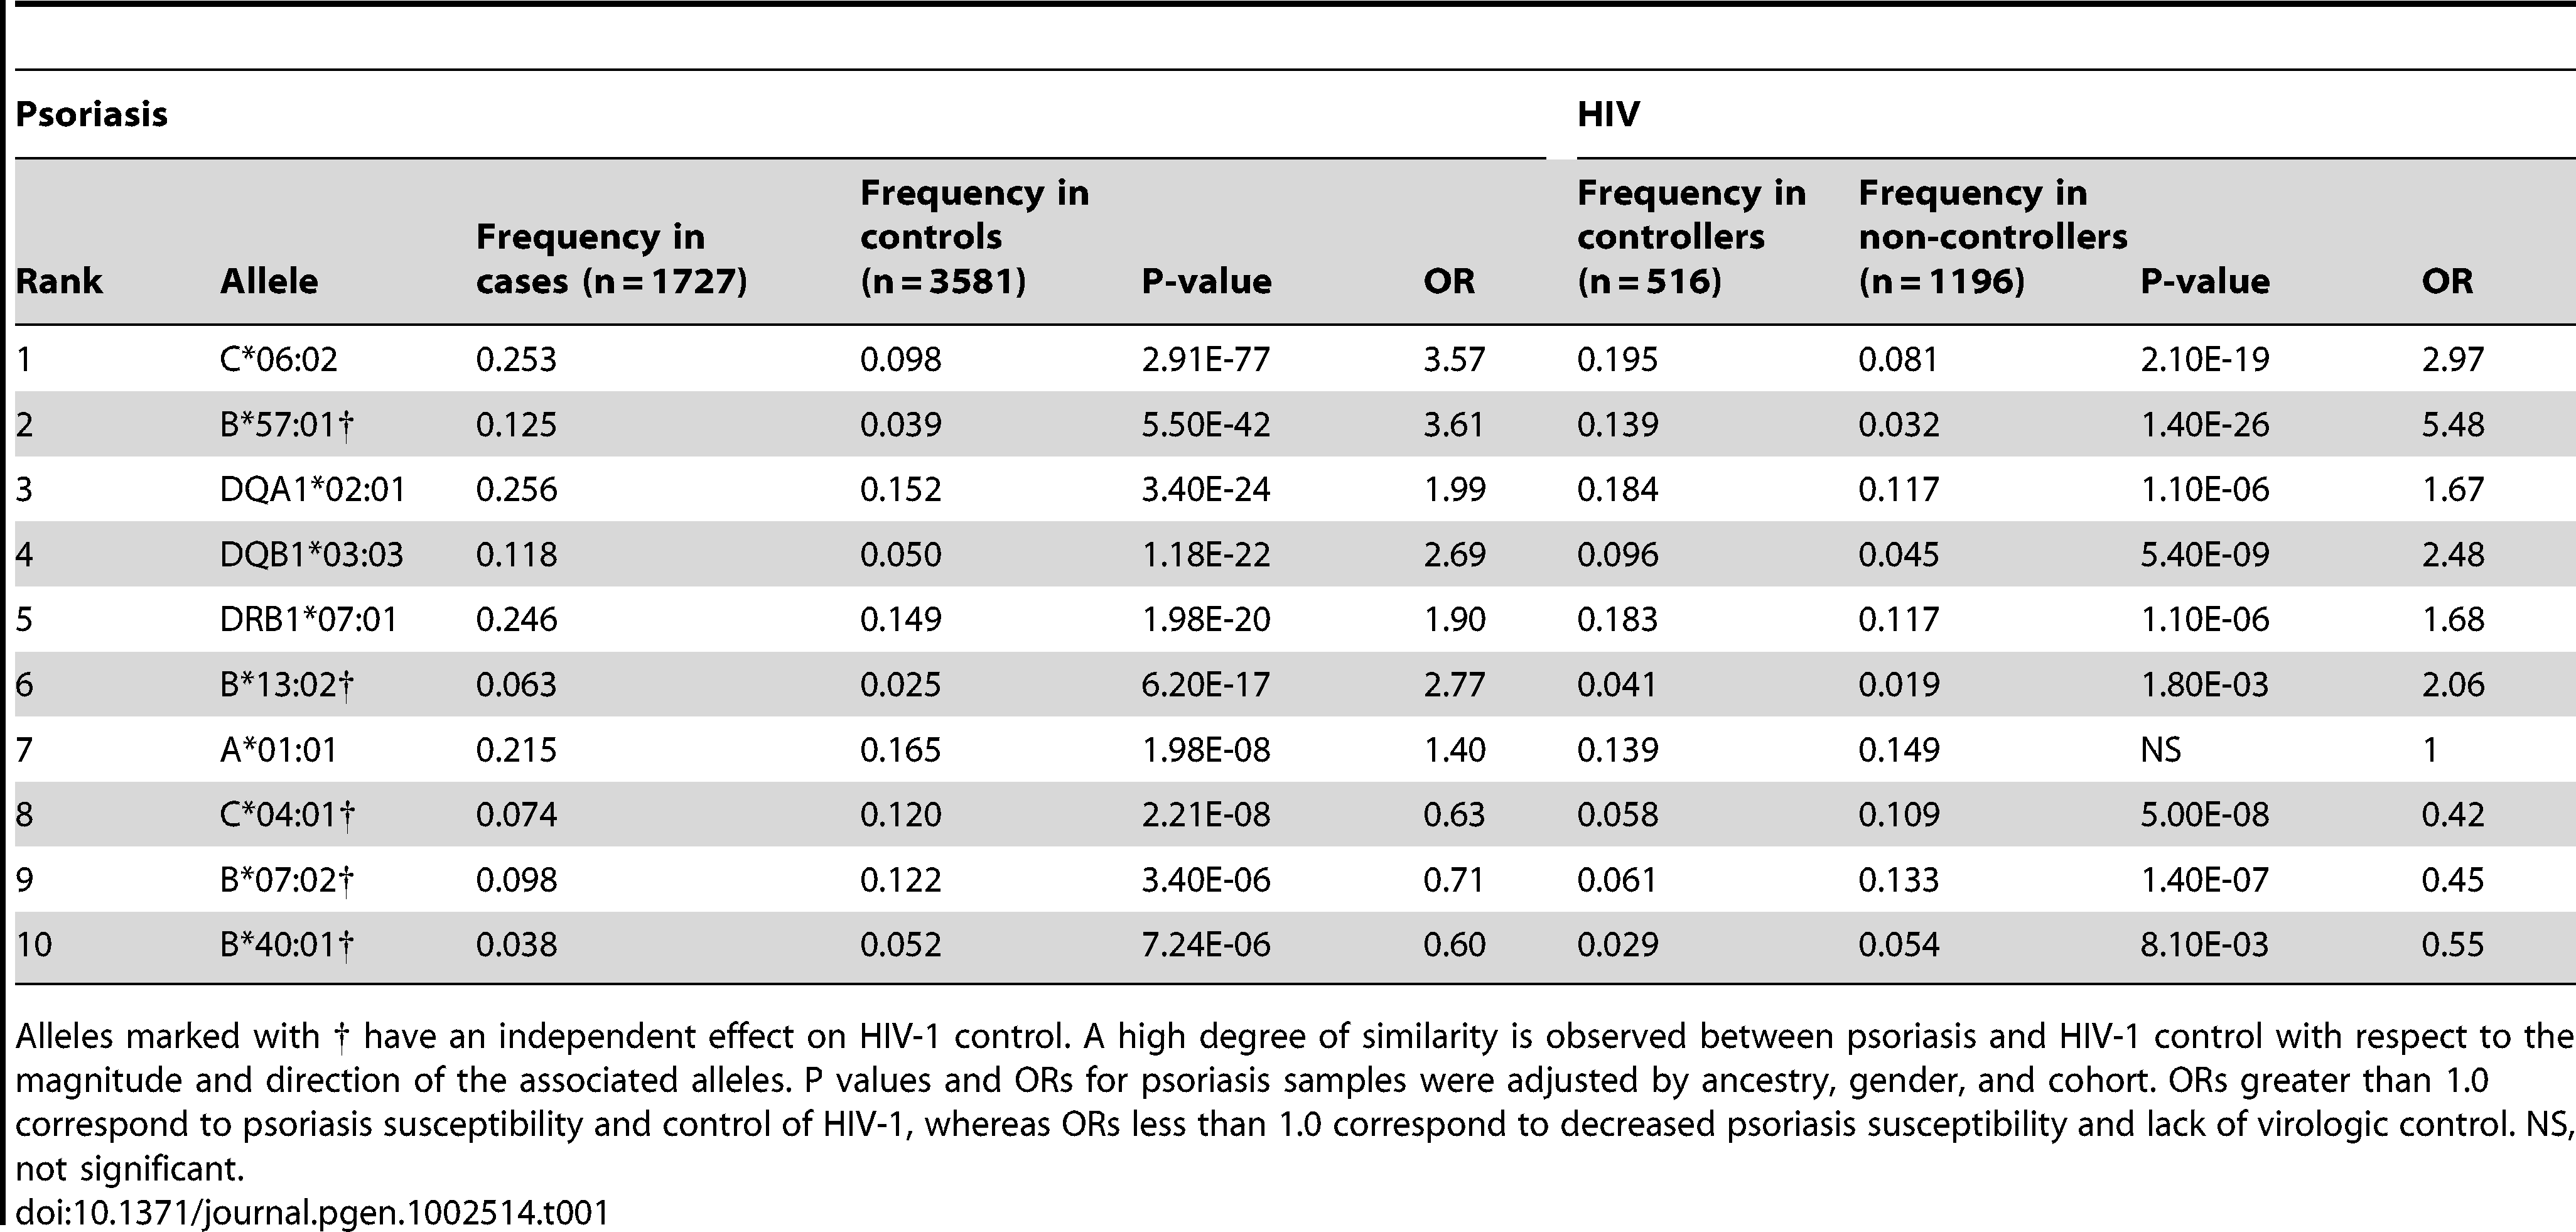 Top ten classical HLA alleles associated with psoriasis, and comparison to HIV-1 controllers as published in <em class=&quot;ref&quot;>[15]</em>.